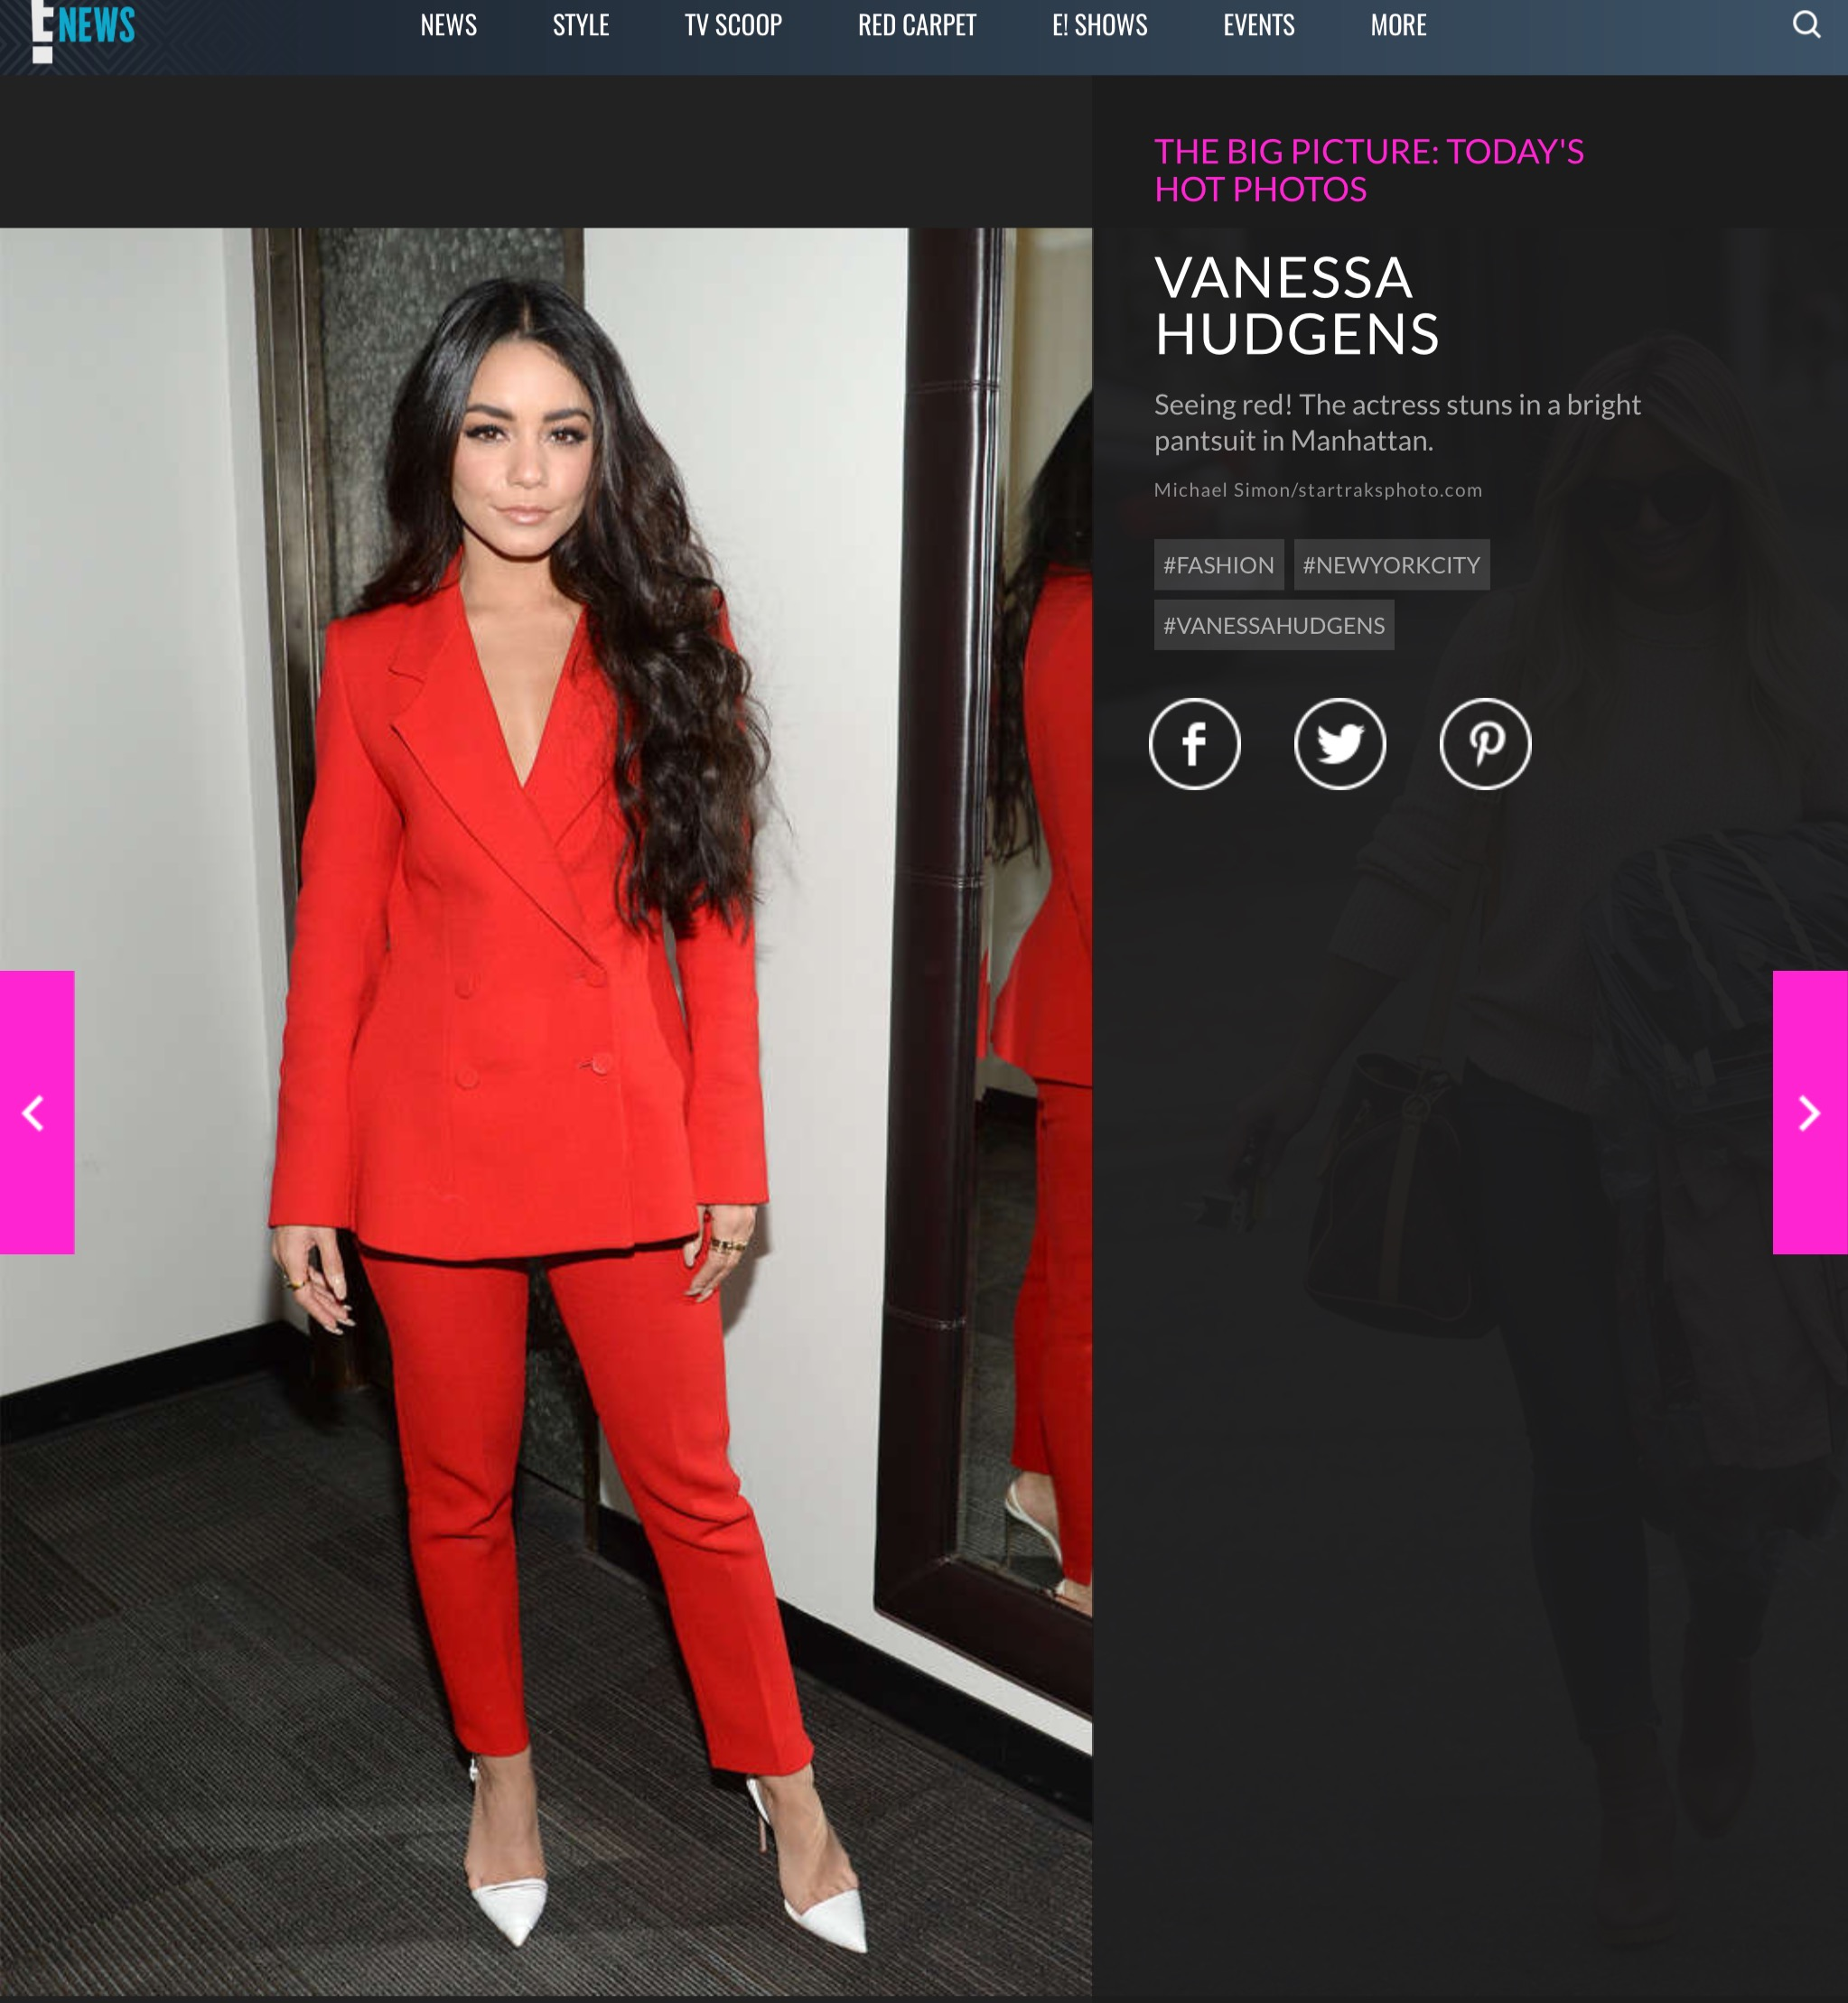 Vanessa Hudgens Wears A Red Romanian Styland Suit Business Review